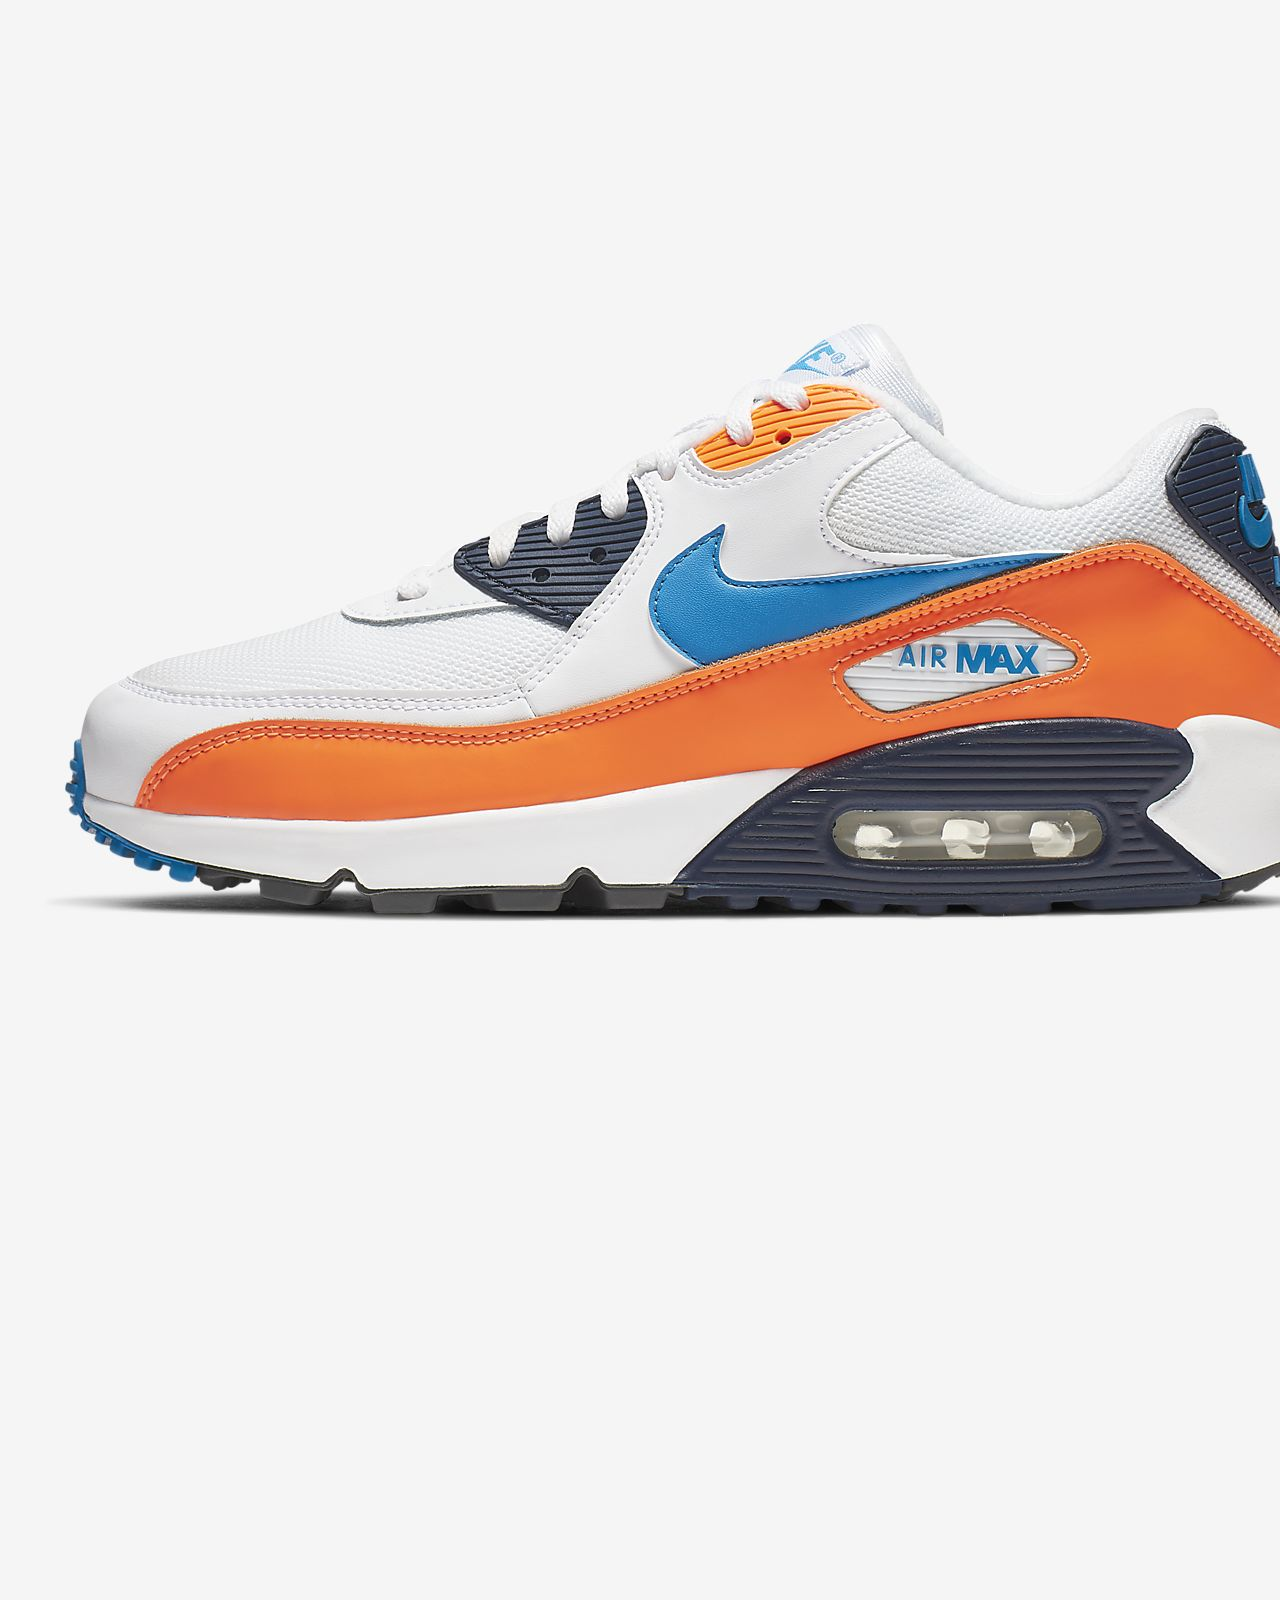 separation shoes e5602 0297c ... Nike Air Max 90 Essential Men s Shoe